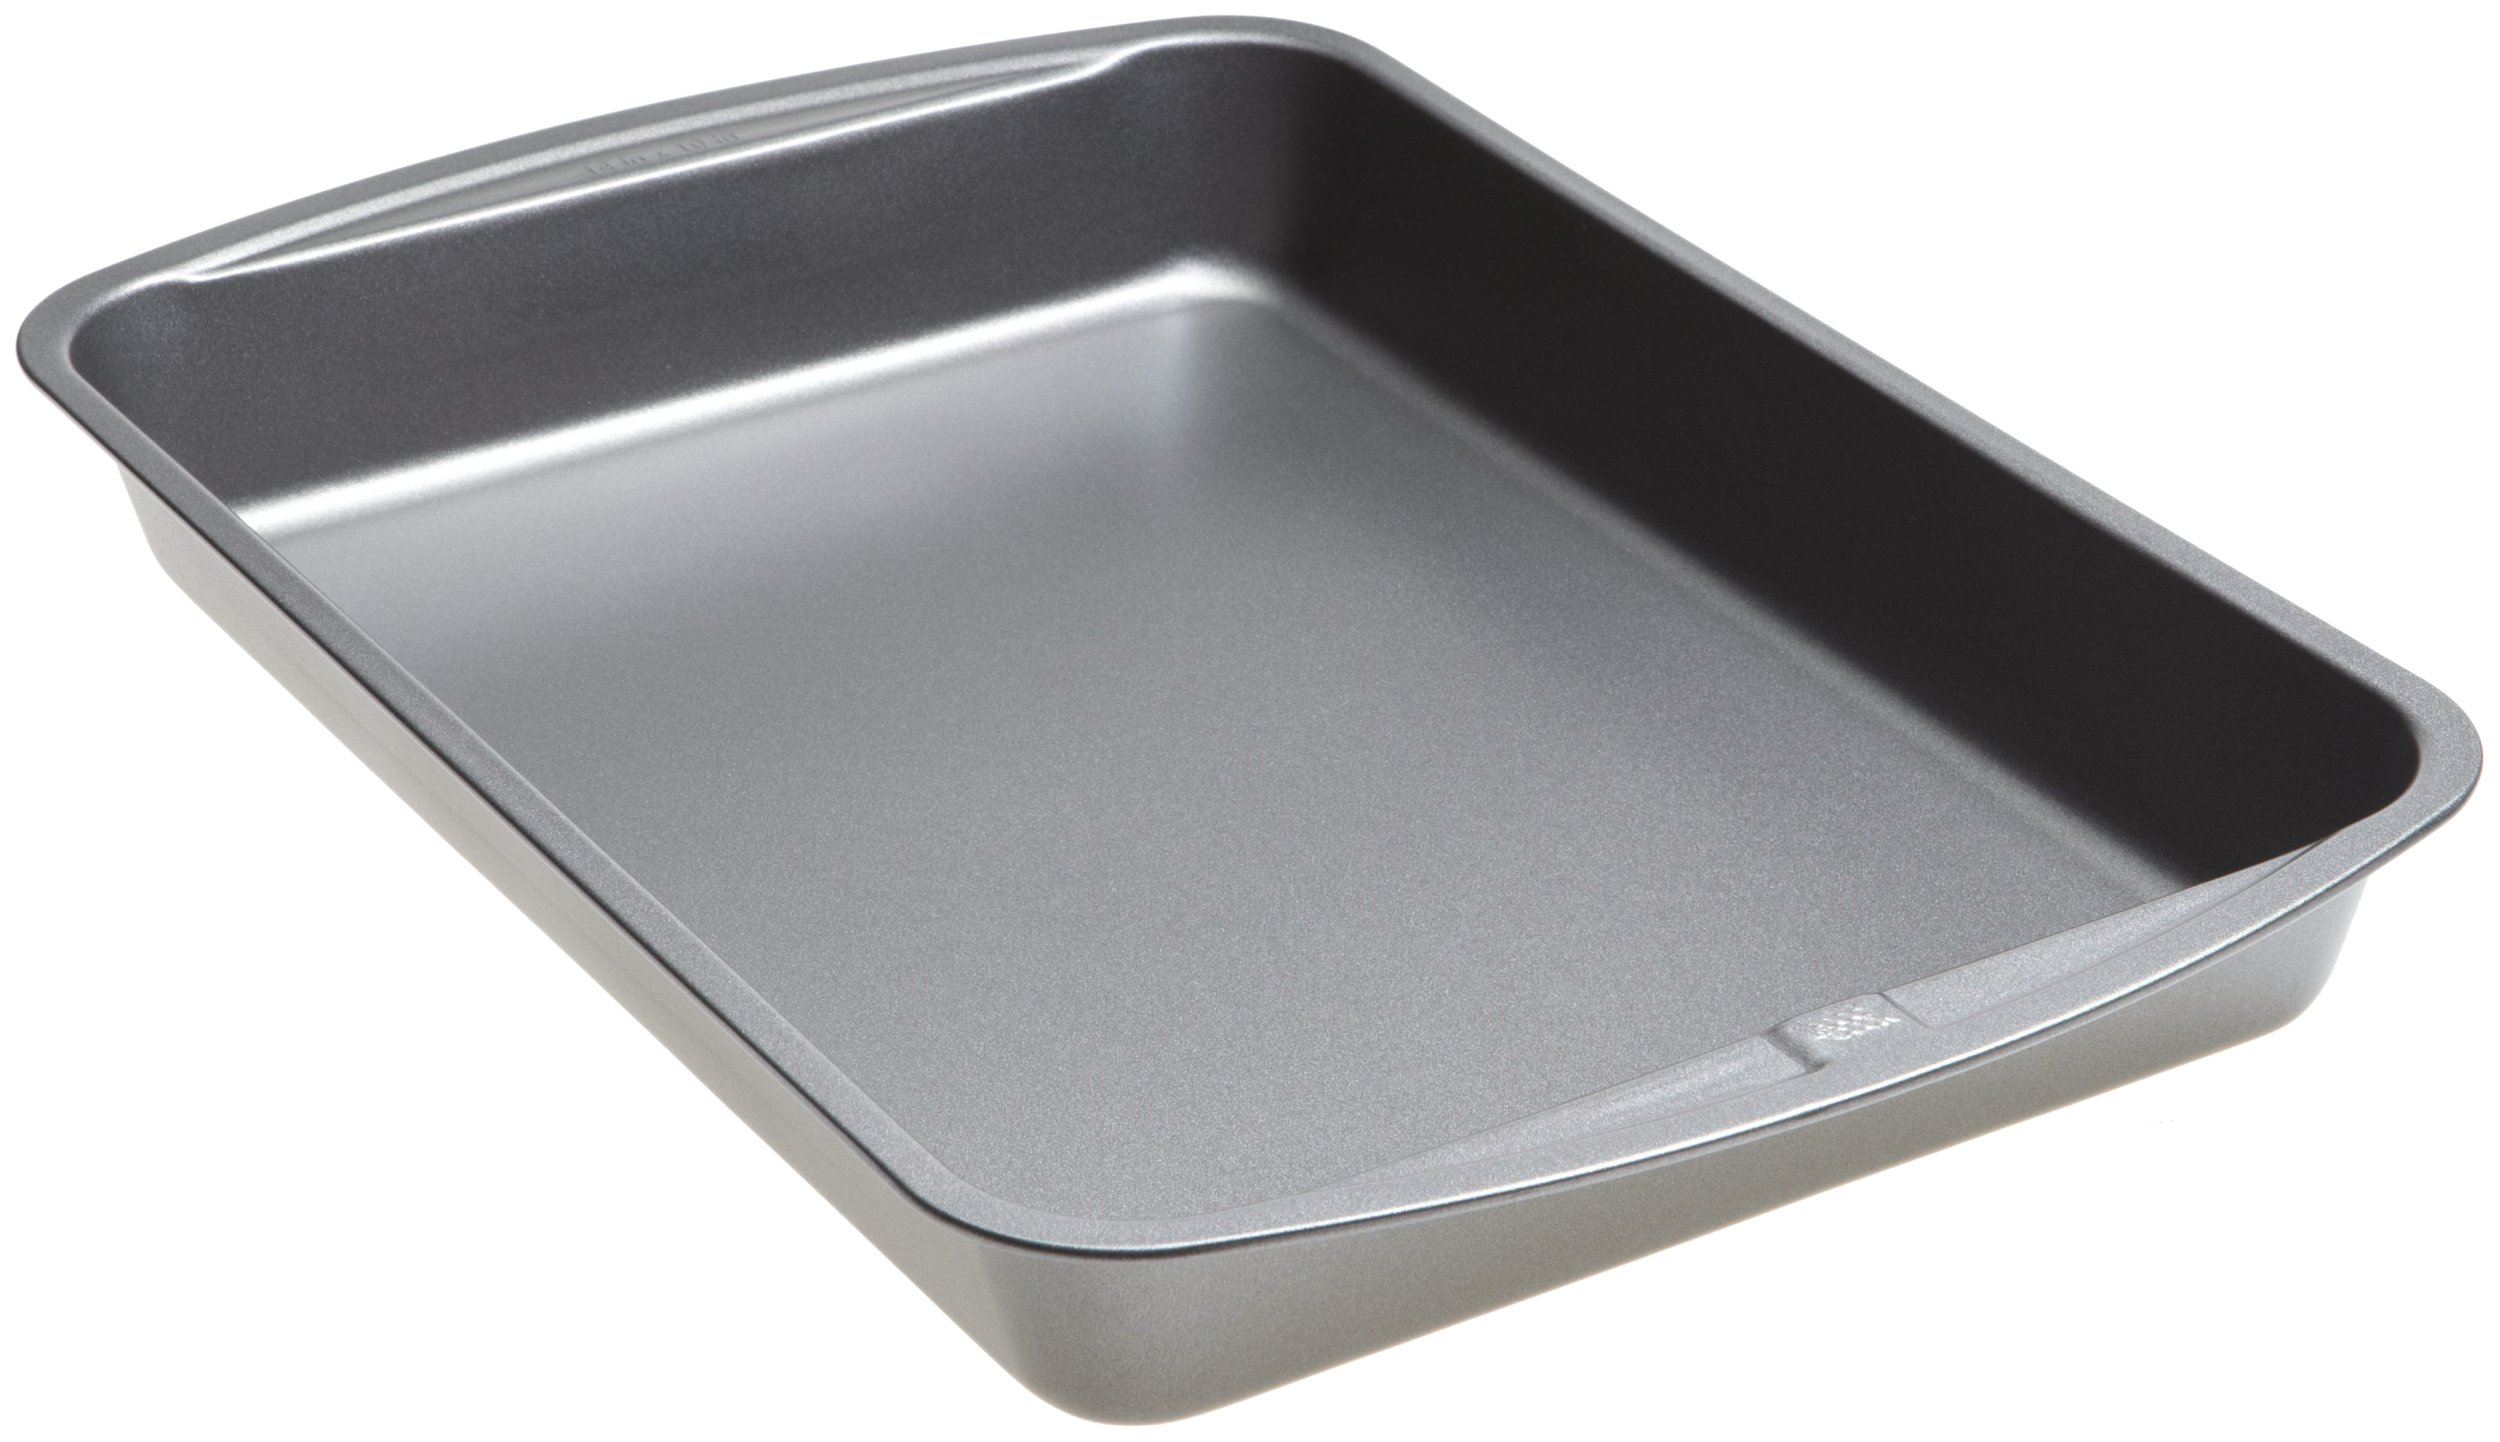 Good Cook 14 Inch x 10 Inch Lasagna Pan